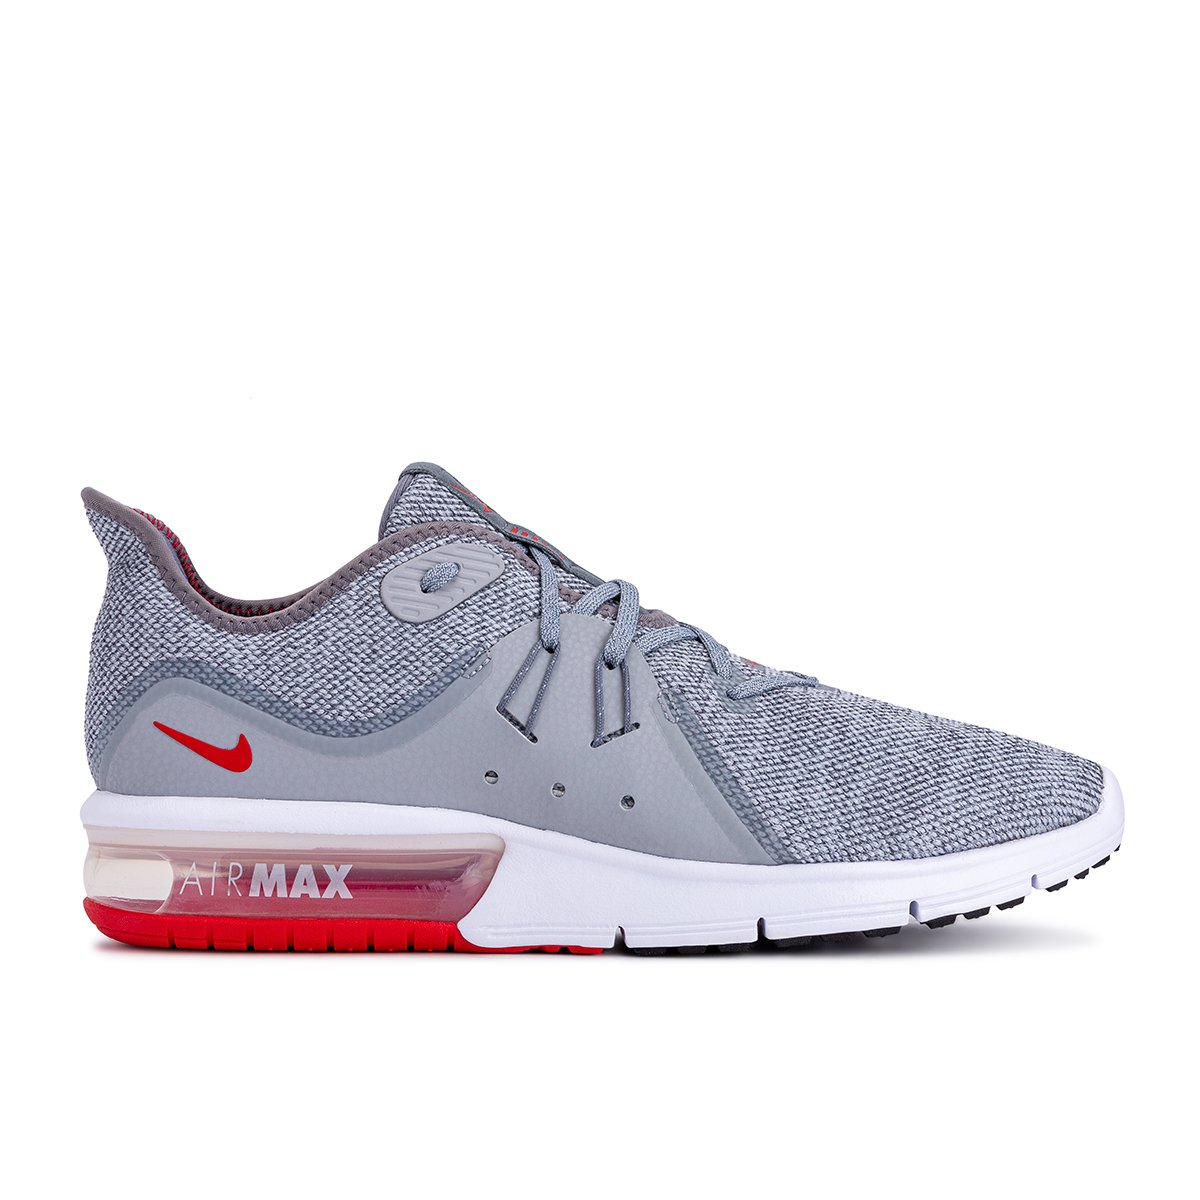 Buy Nike Air Max Sequent 3 - Men's